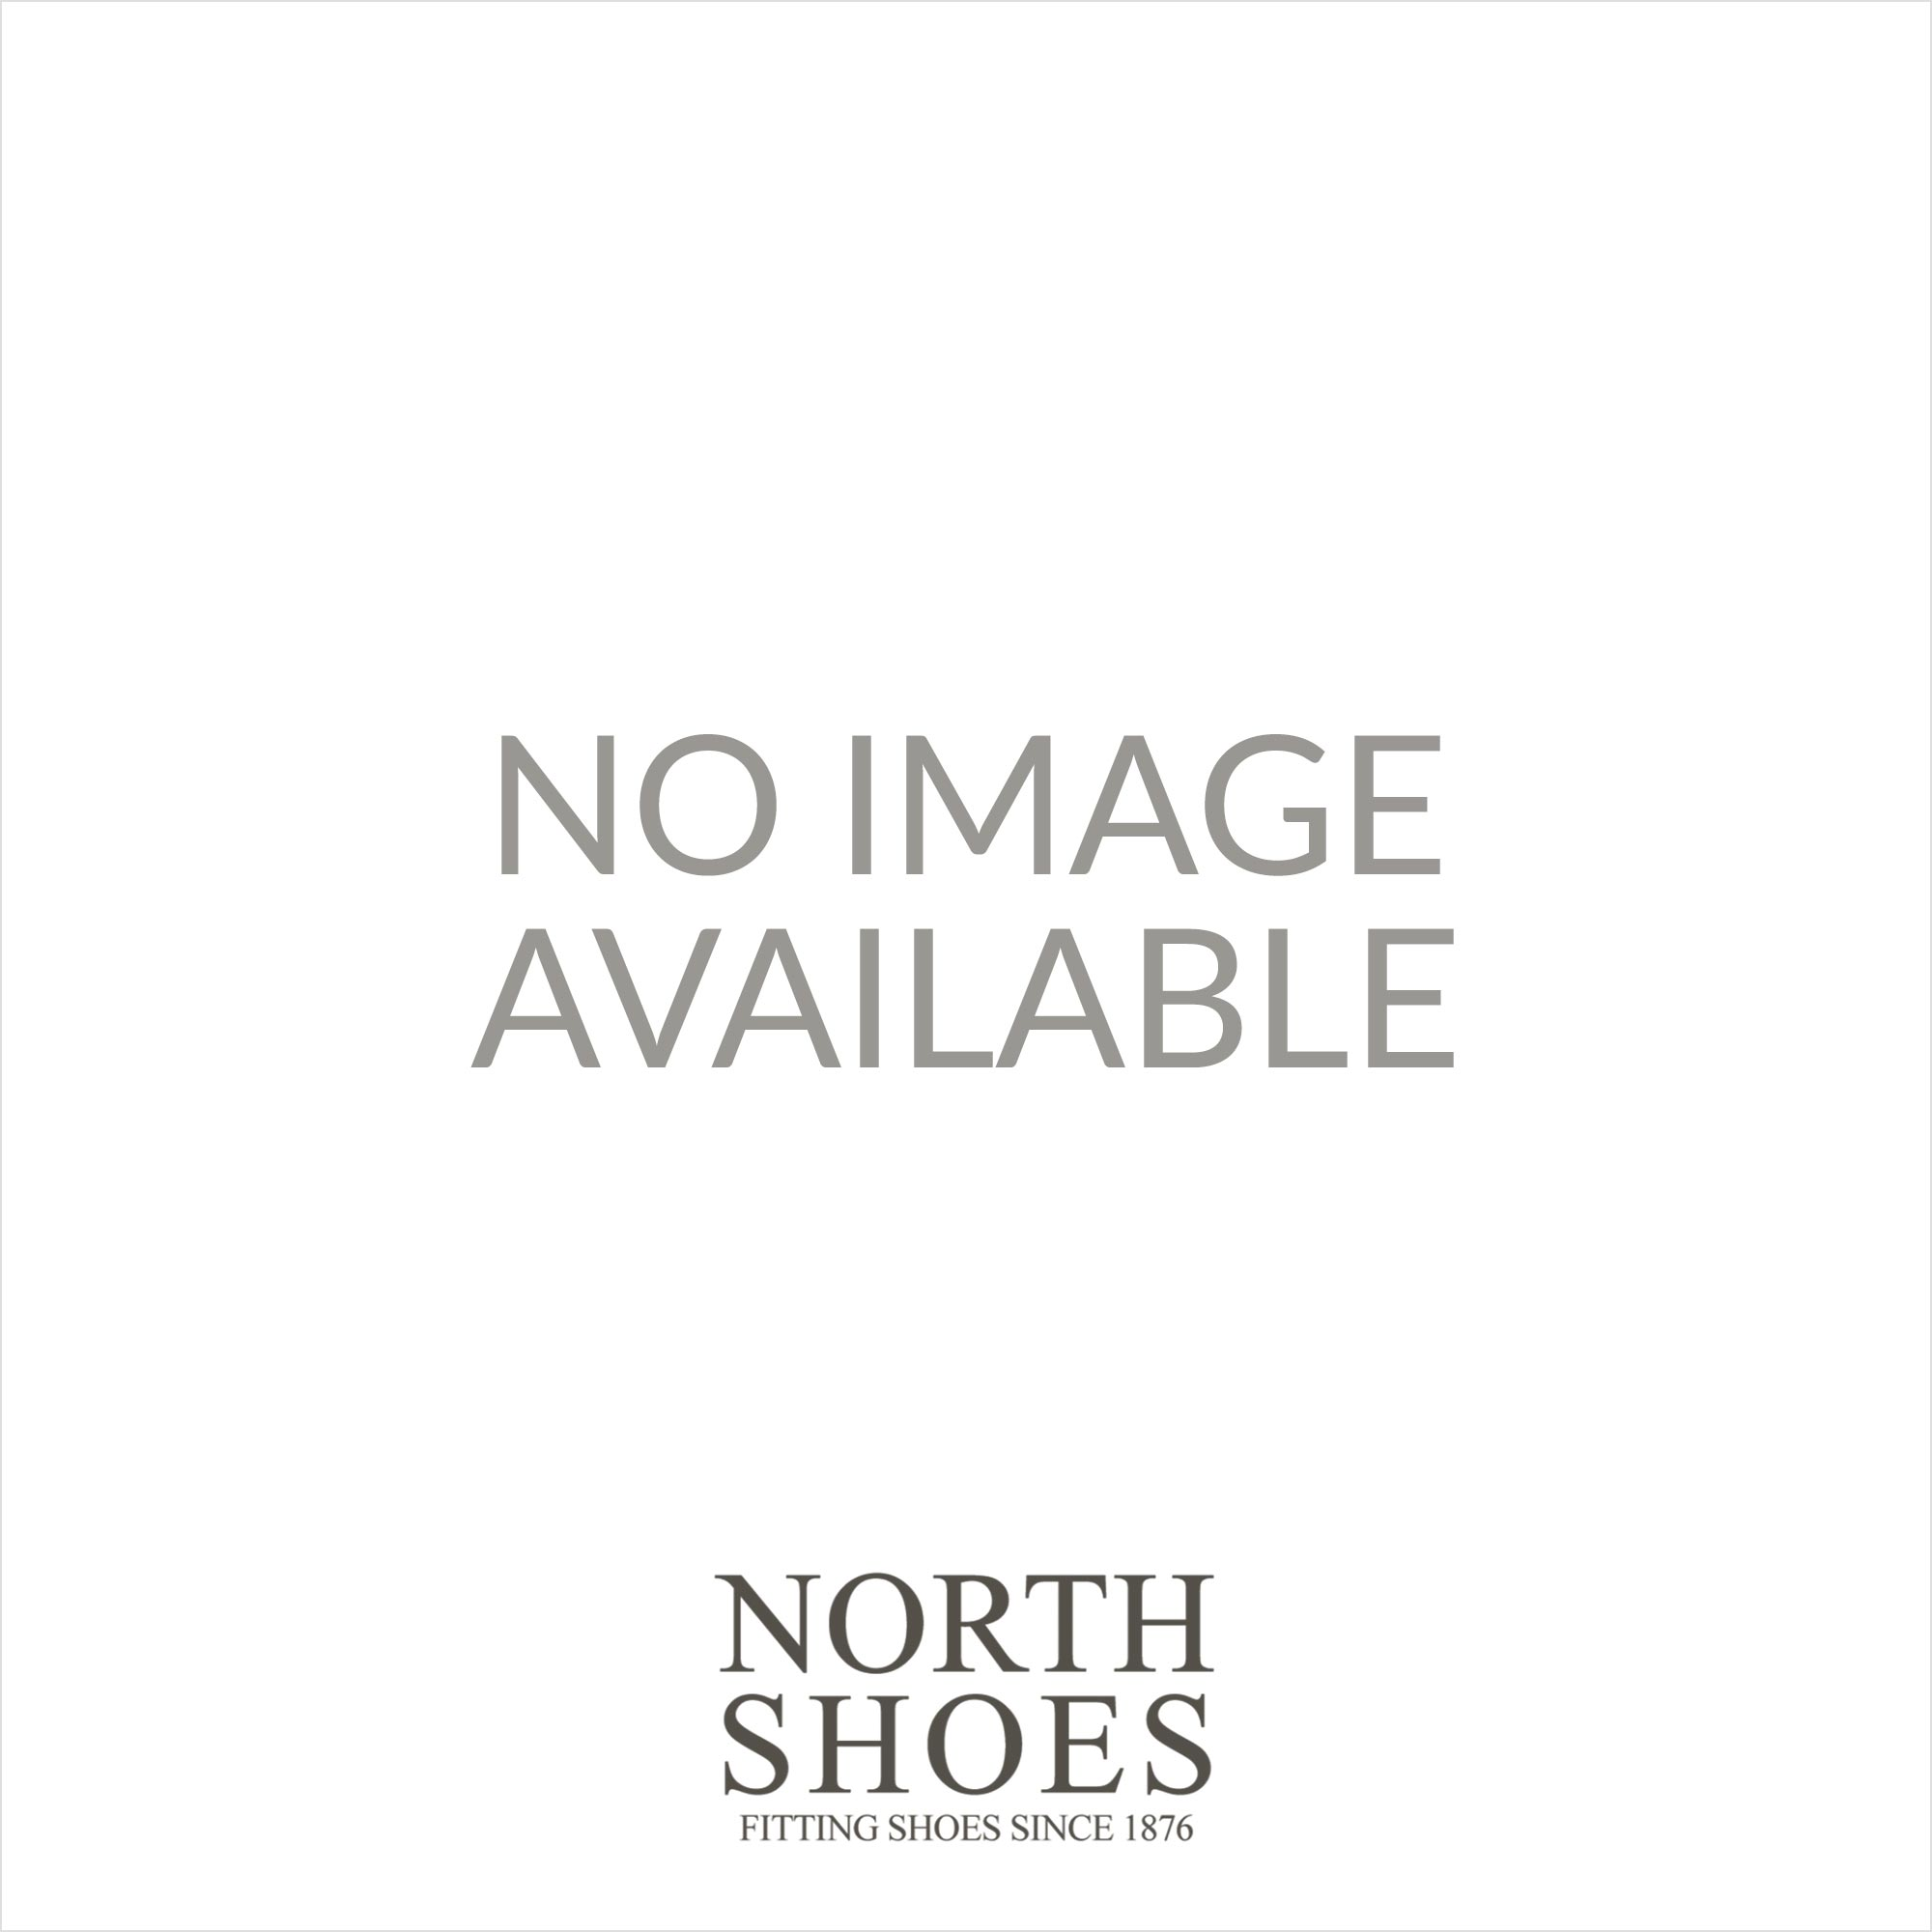 Mya 2V Black Leather Womens Wide Fit Rip Tape Shoes - UK 4